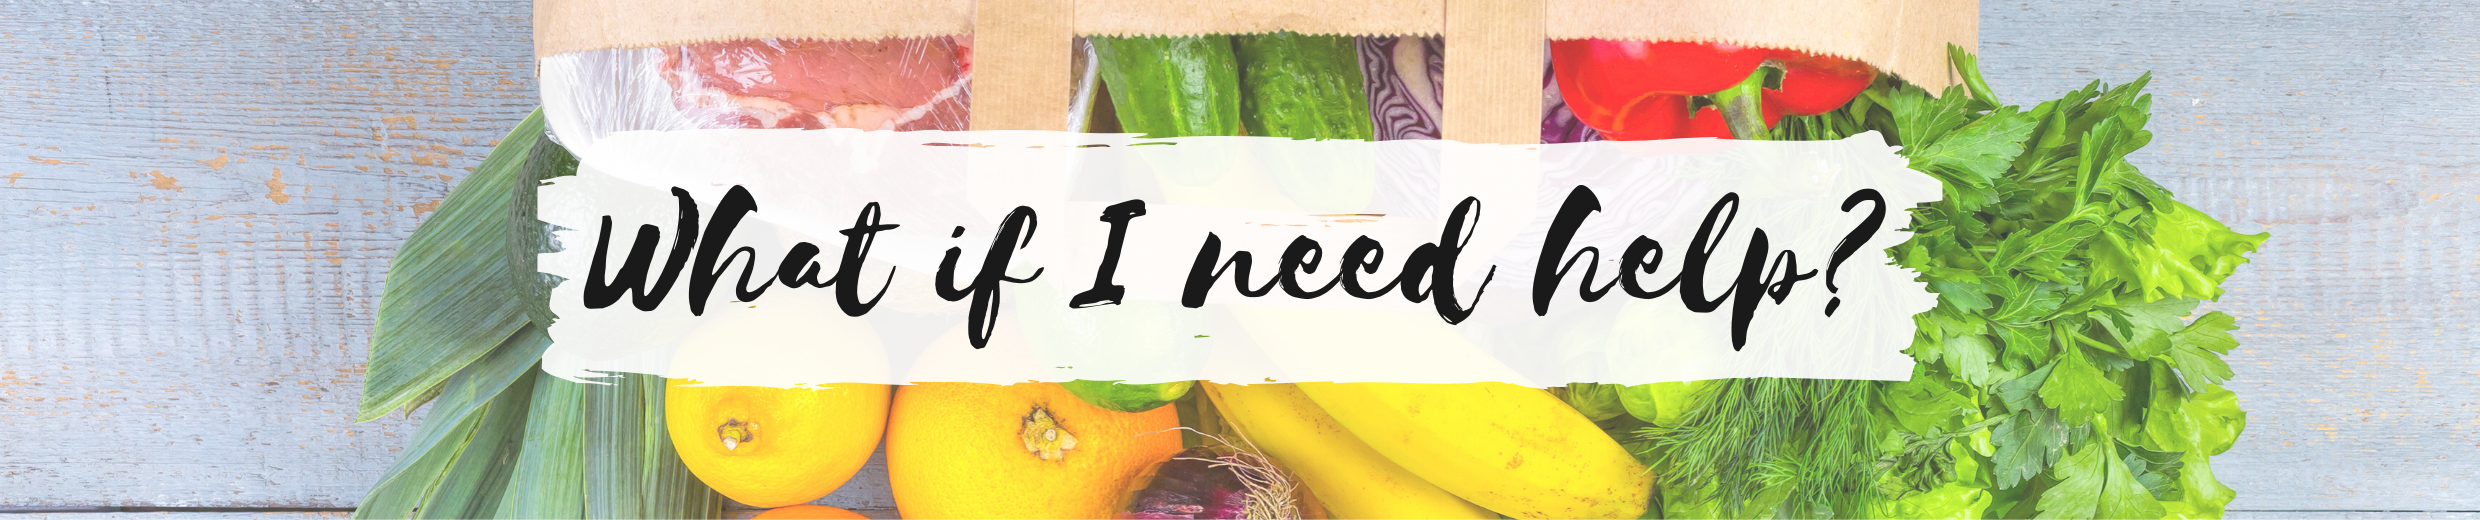 what if i need help banner